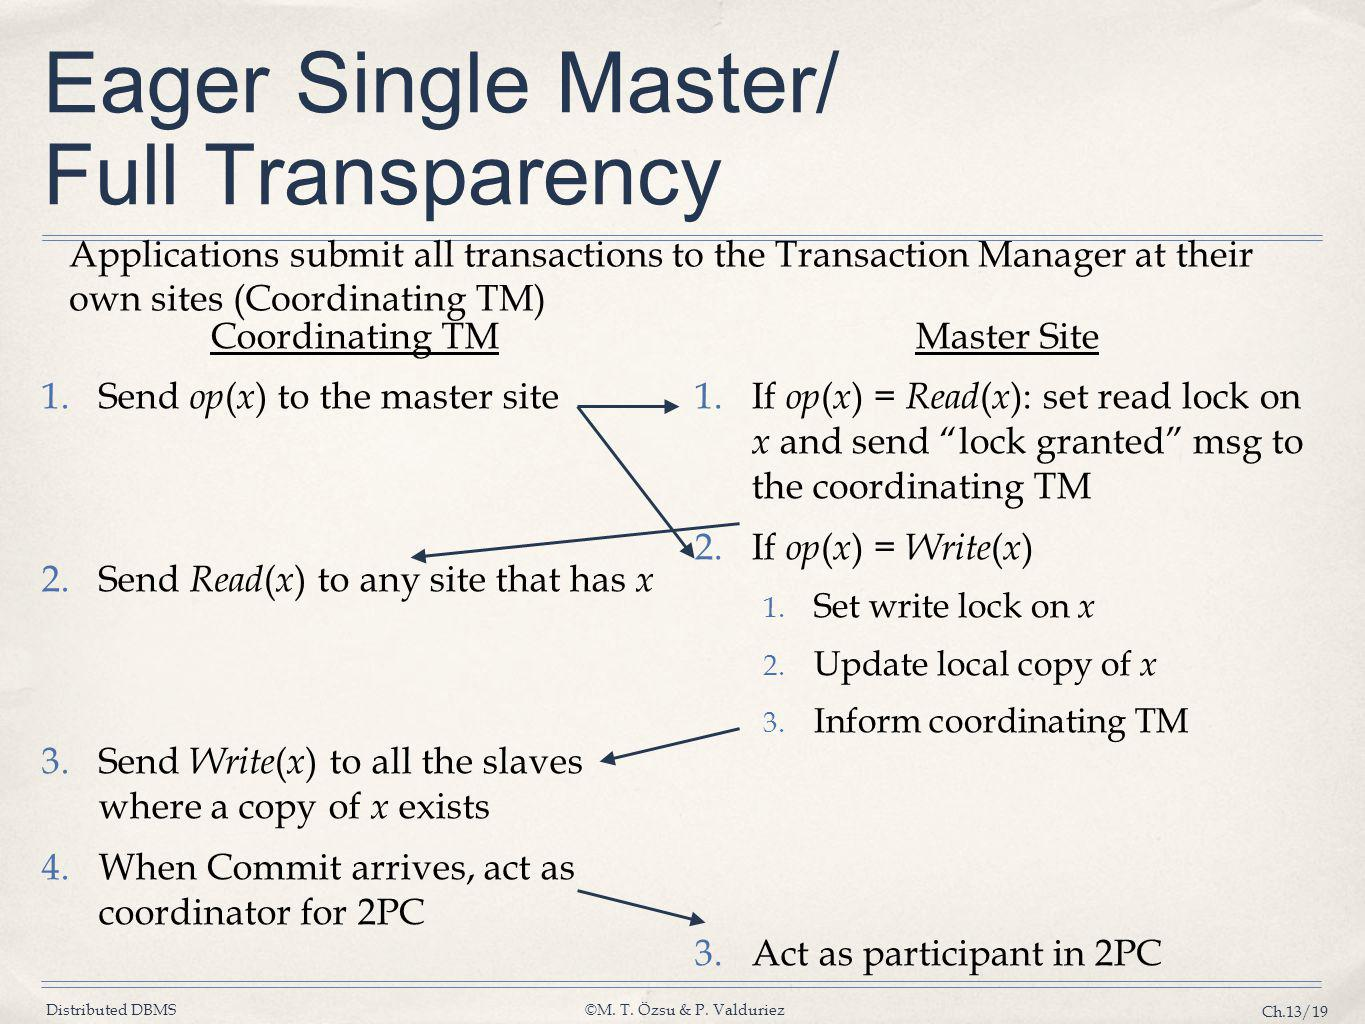 Eager Single Master/ Full Transparency